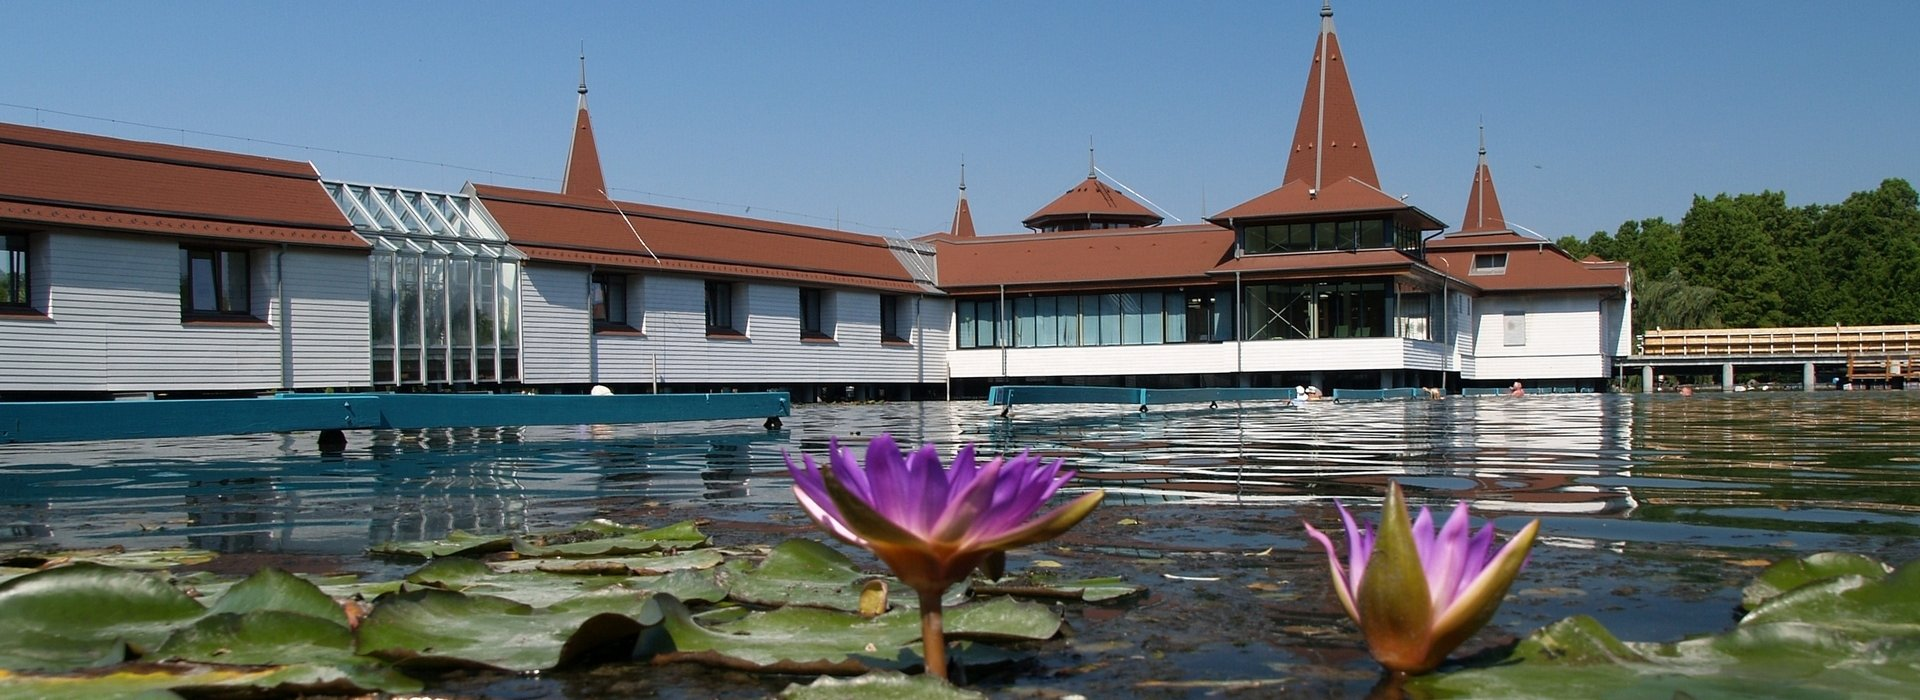 Várkert Spa (Pápa Medicinal and Thermal Bath)